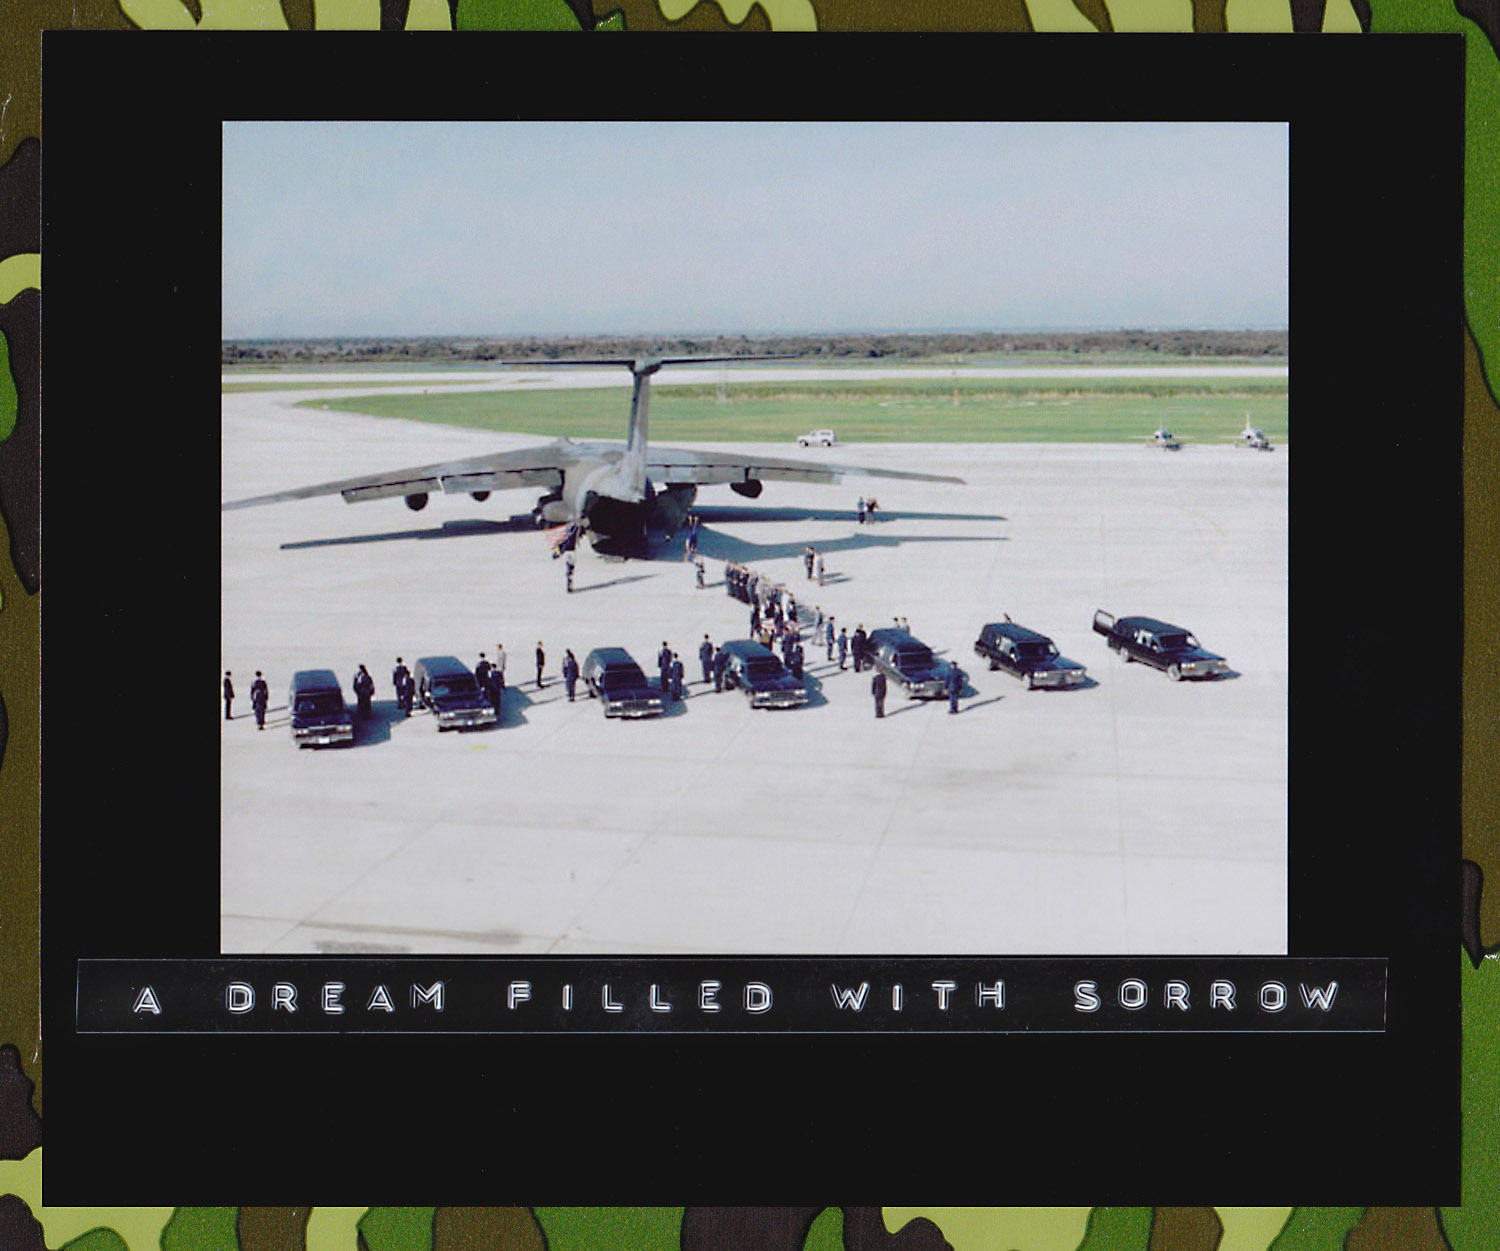 The Space Shuttle Challenger crewmember remains are transferred from 7 hearse vehicles to a MAC C-141 transport plane at the Kennedy Space Center's Shuttle Landing Facility for transport to Dover Air Force Base, Delaware. The STS-51L crew consisted of: Pilot, Mike Smith; Commander, Dick Scobee; Mission Specialist, Ron McNair; Mission Specialist, Ellison S. Onizuka; Payload Specialist, Greg Jarvis; Mission Specialist, Judy Resnik; and Teacher in Space Participant Sharon Christa McAuliffe. 30 August 1988.(Source: NASA JSC Digital Image Collection)